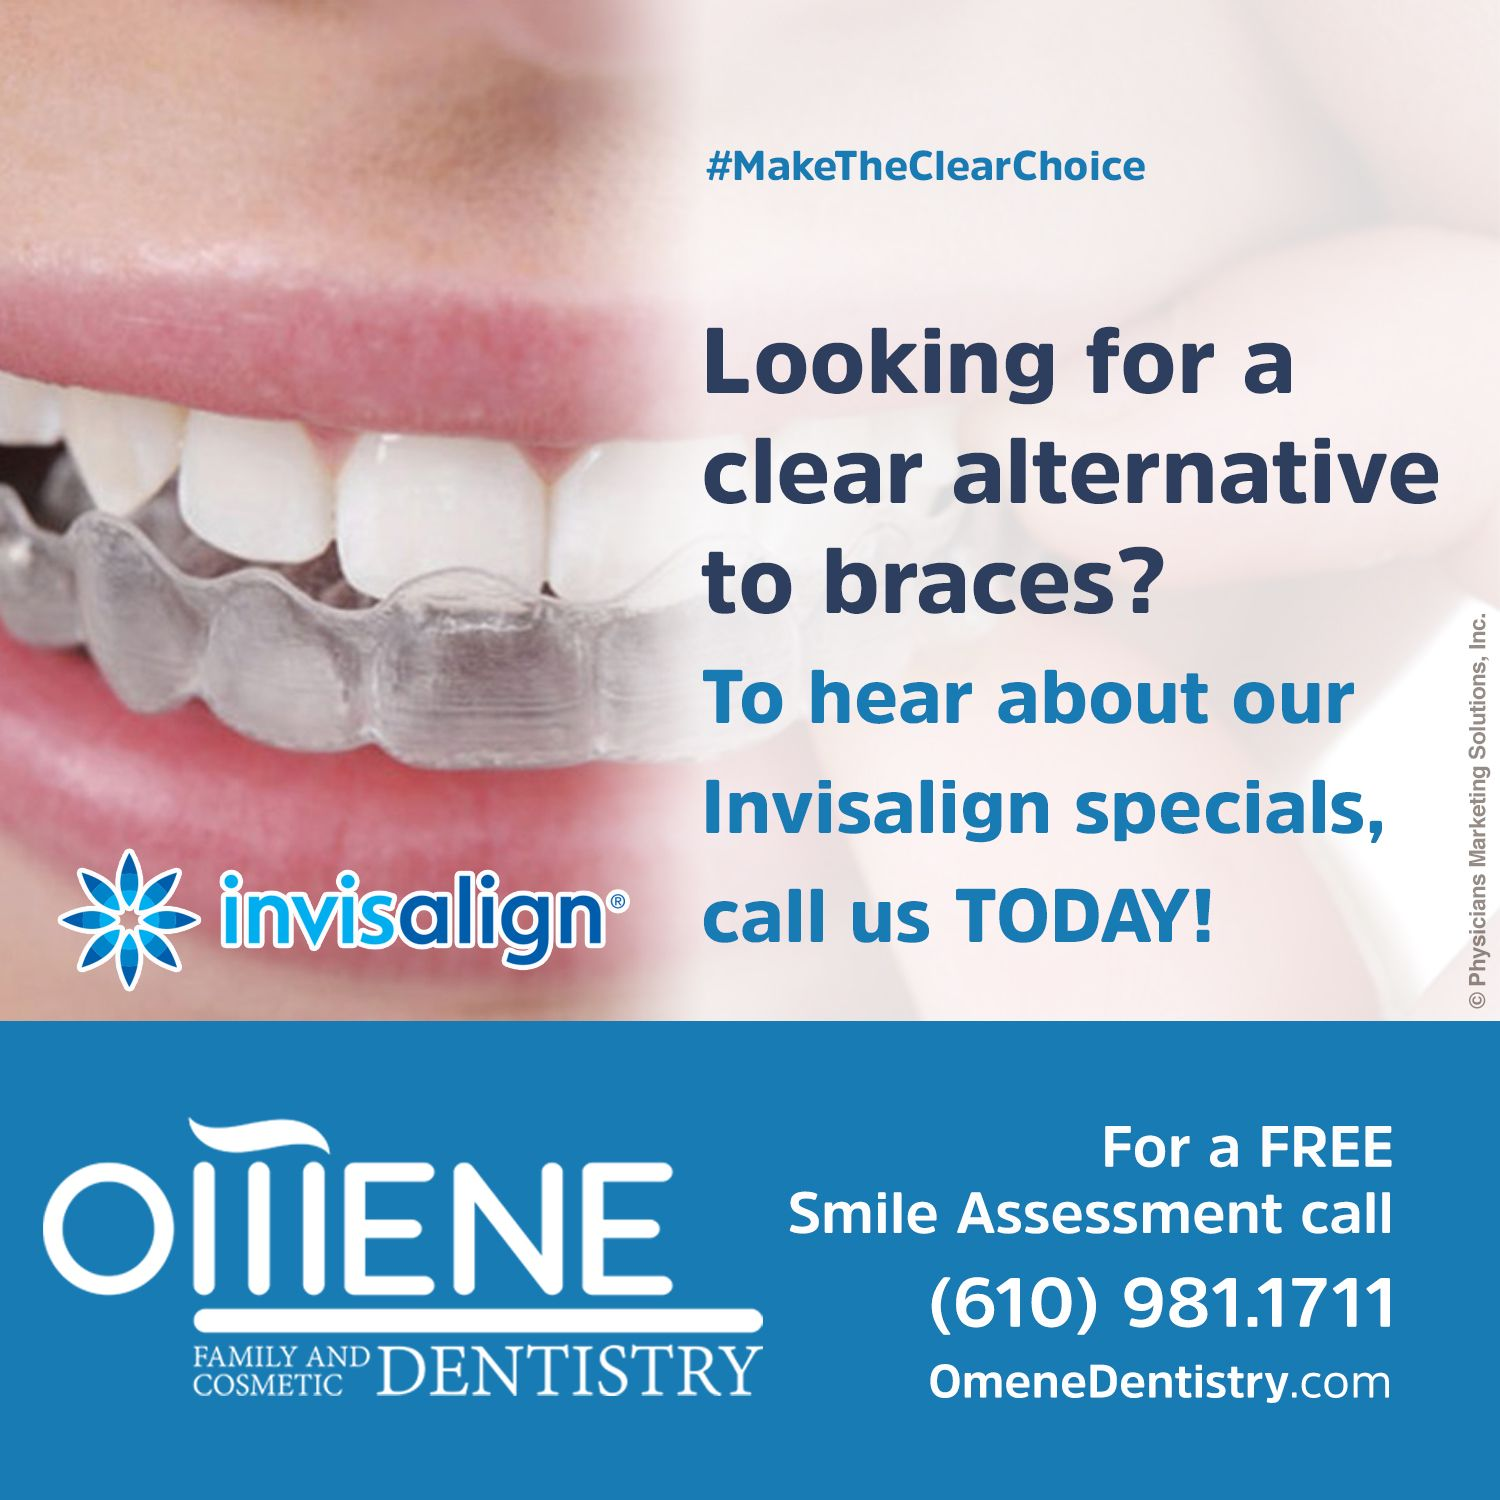 Looking for a clear alternative to #braces? To hear about our #Invisalign specials, call us at (610) 981.1711 / www.omenedentistry.com #drguliaomene #omenedentistry #pensilvania #dentalpractice #confidence #cosmeticdentistry #dentaljob #tmj #dentistryservices #implantdentistry #invisalign #dentalcare #dentalfiller #preventivedentalcare #dentist #porcelain #crowns #veneers #dentalimplant #dentalbridge #clearbraces #teeth #whitening #restorative #preventative #dentistry #paoli